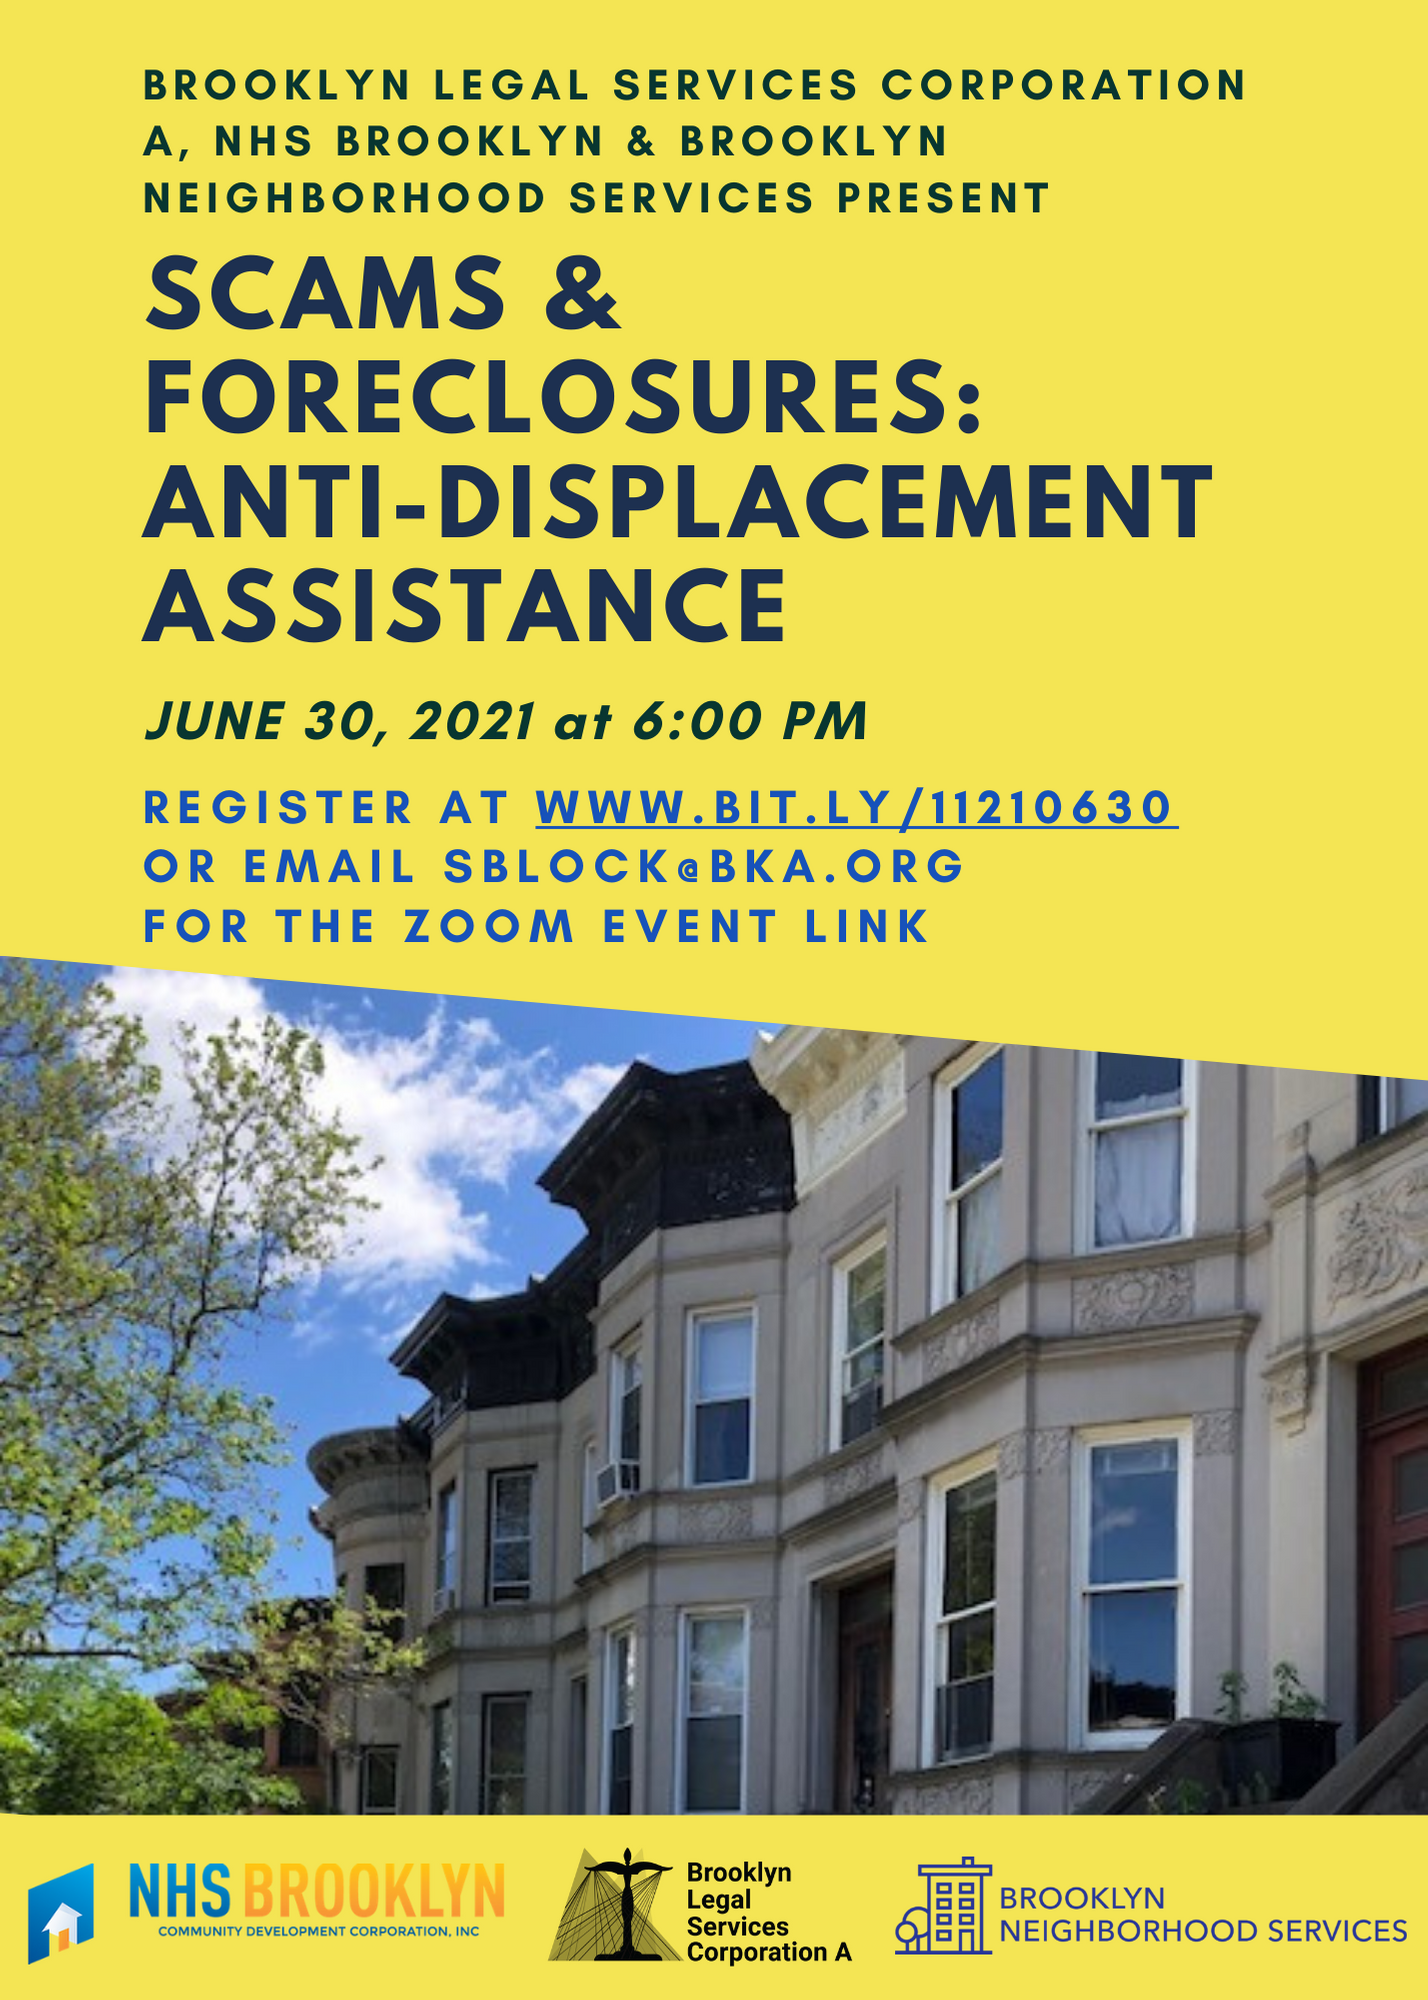 Scams & Foreclosures: Anti-Displacement Assistance